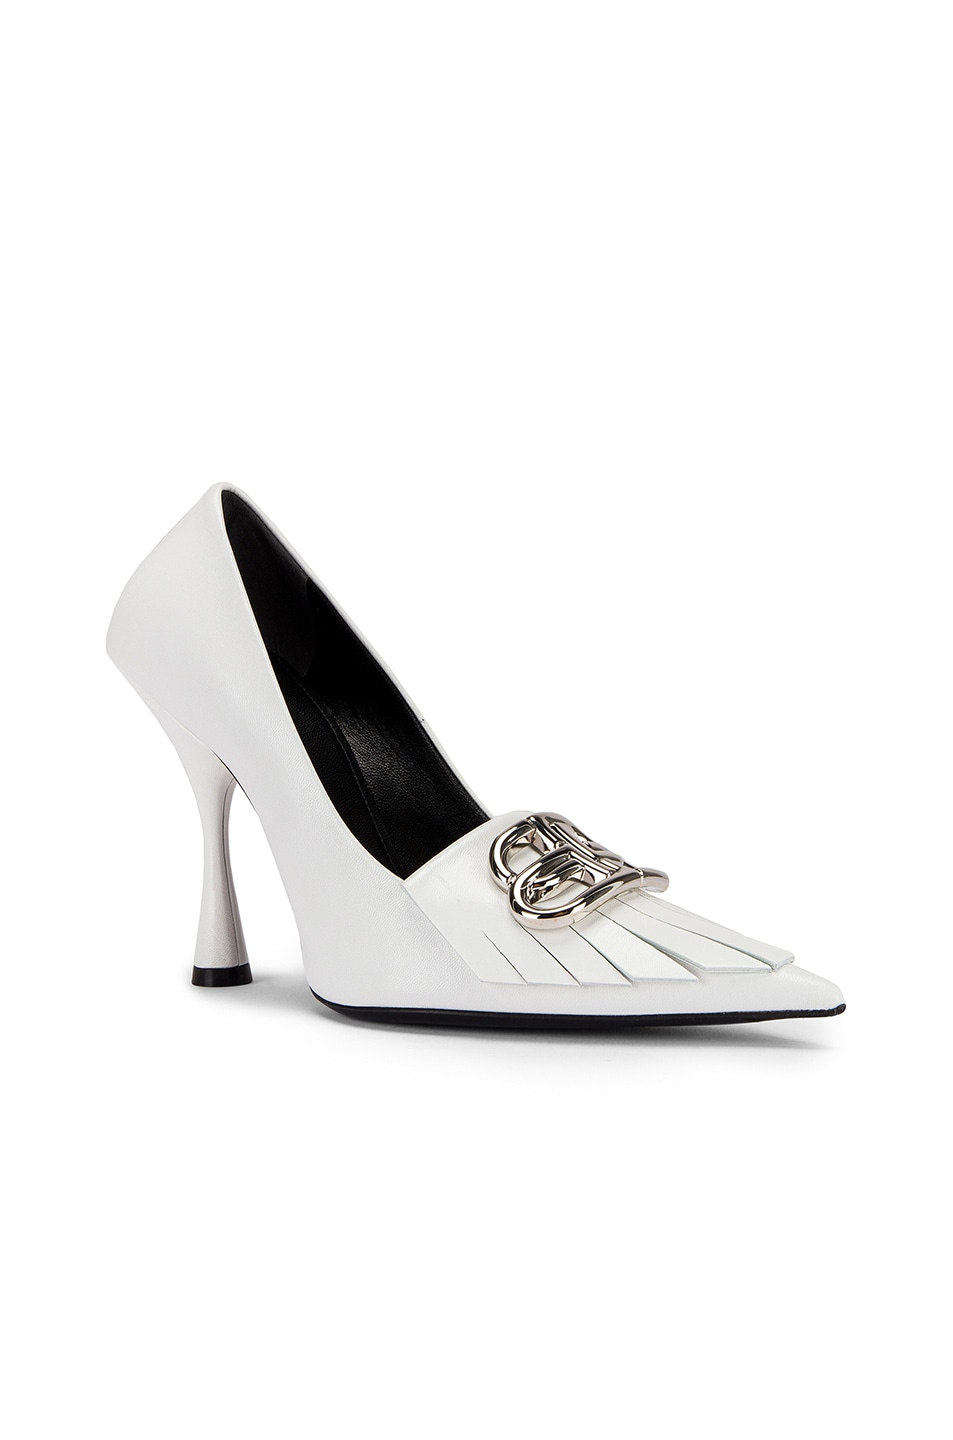 Image 3 of Balenciaga Fringe Knife Pumps in White & Silver